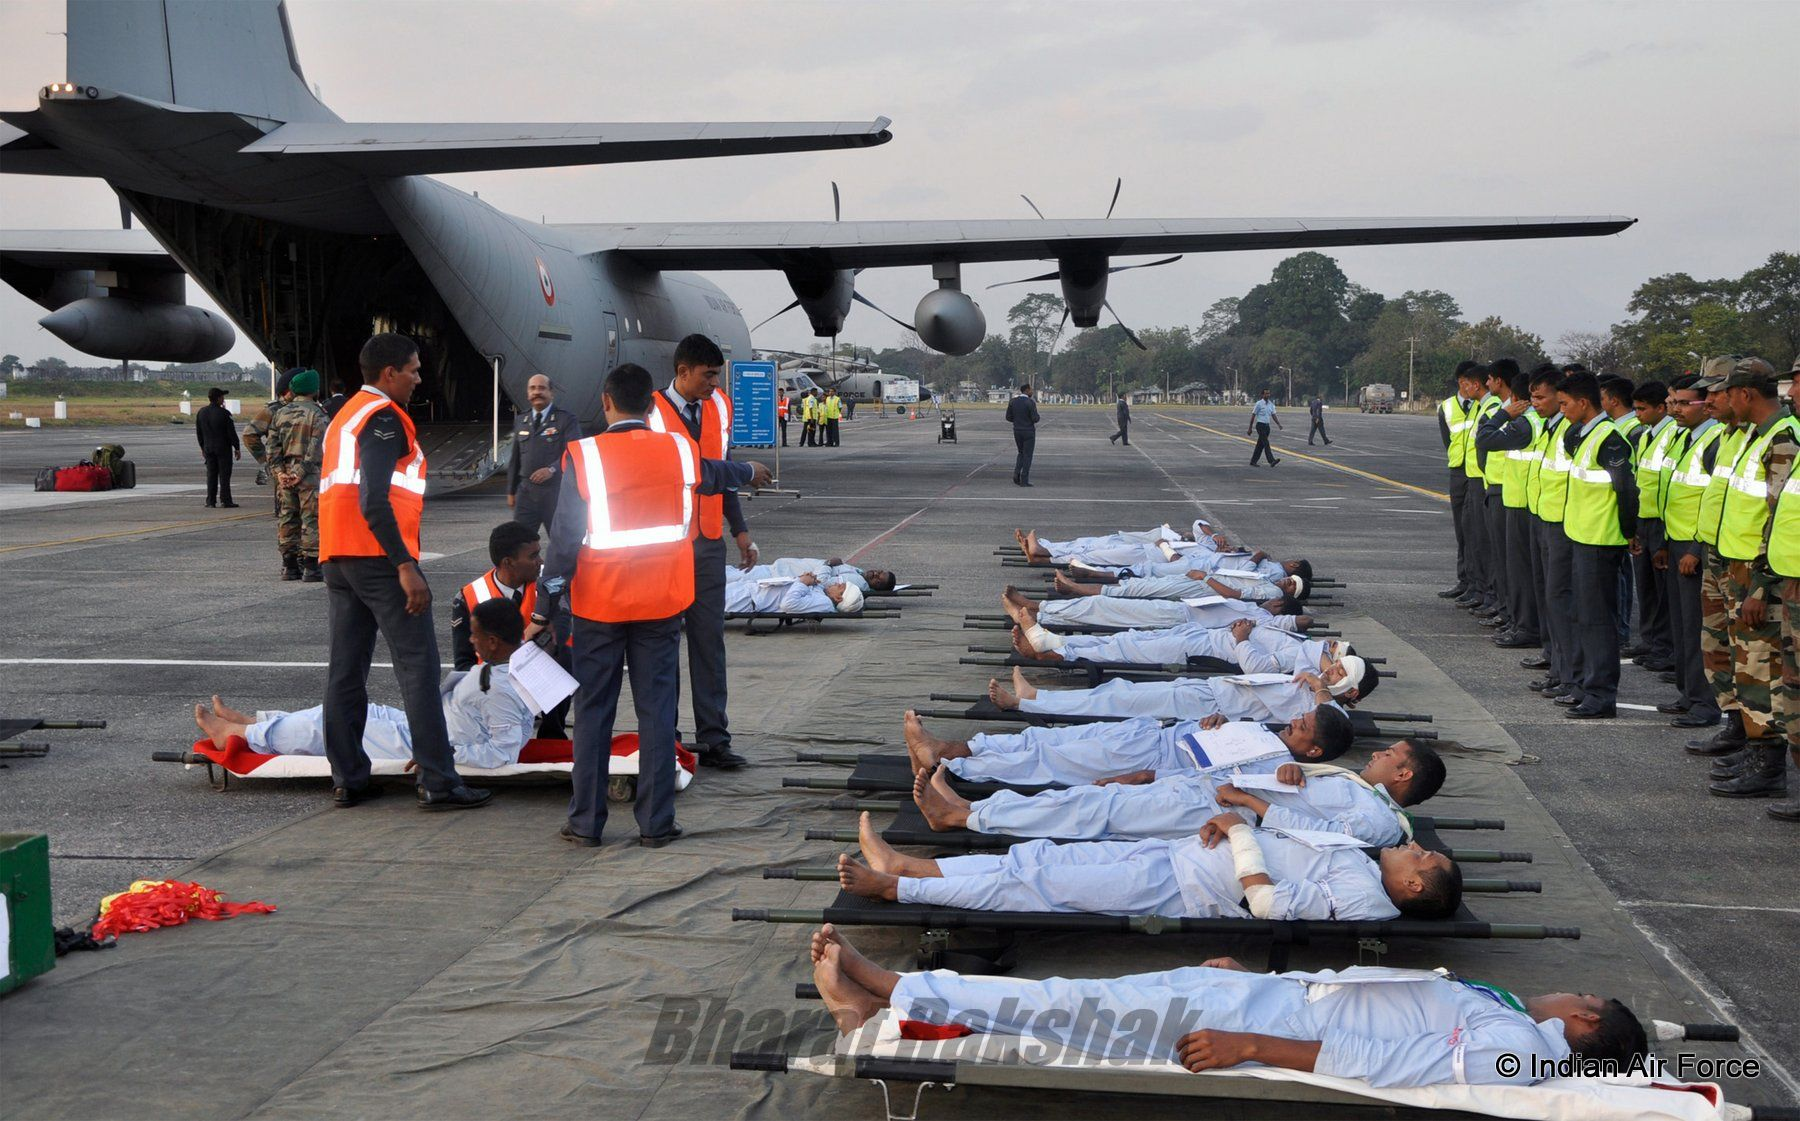 Patients on stretchers airlifted from Jorhat, Assam in an IAF C-130J in a mock exercise